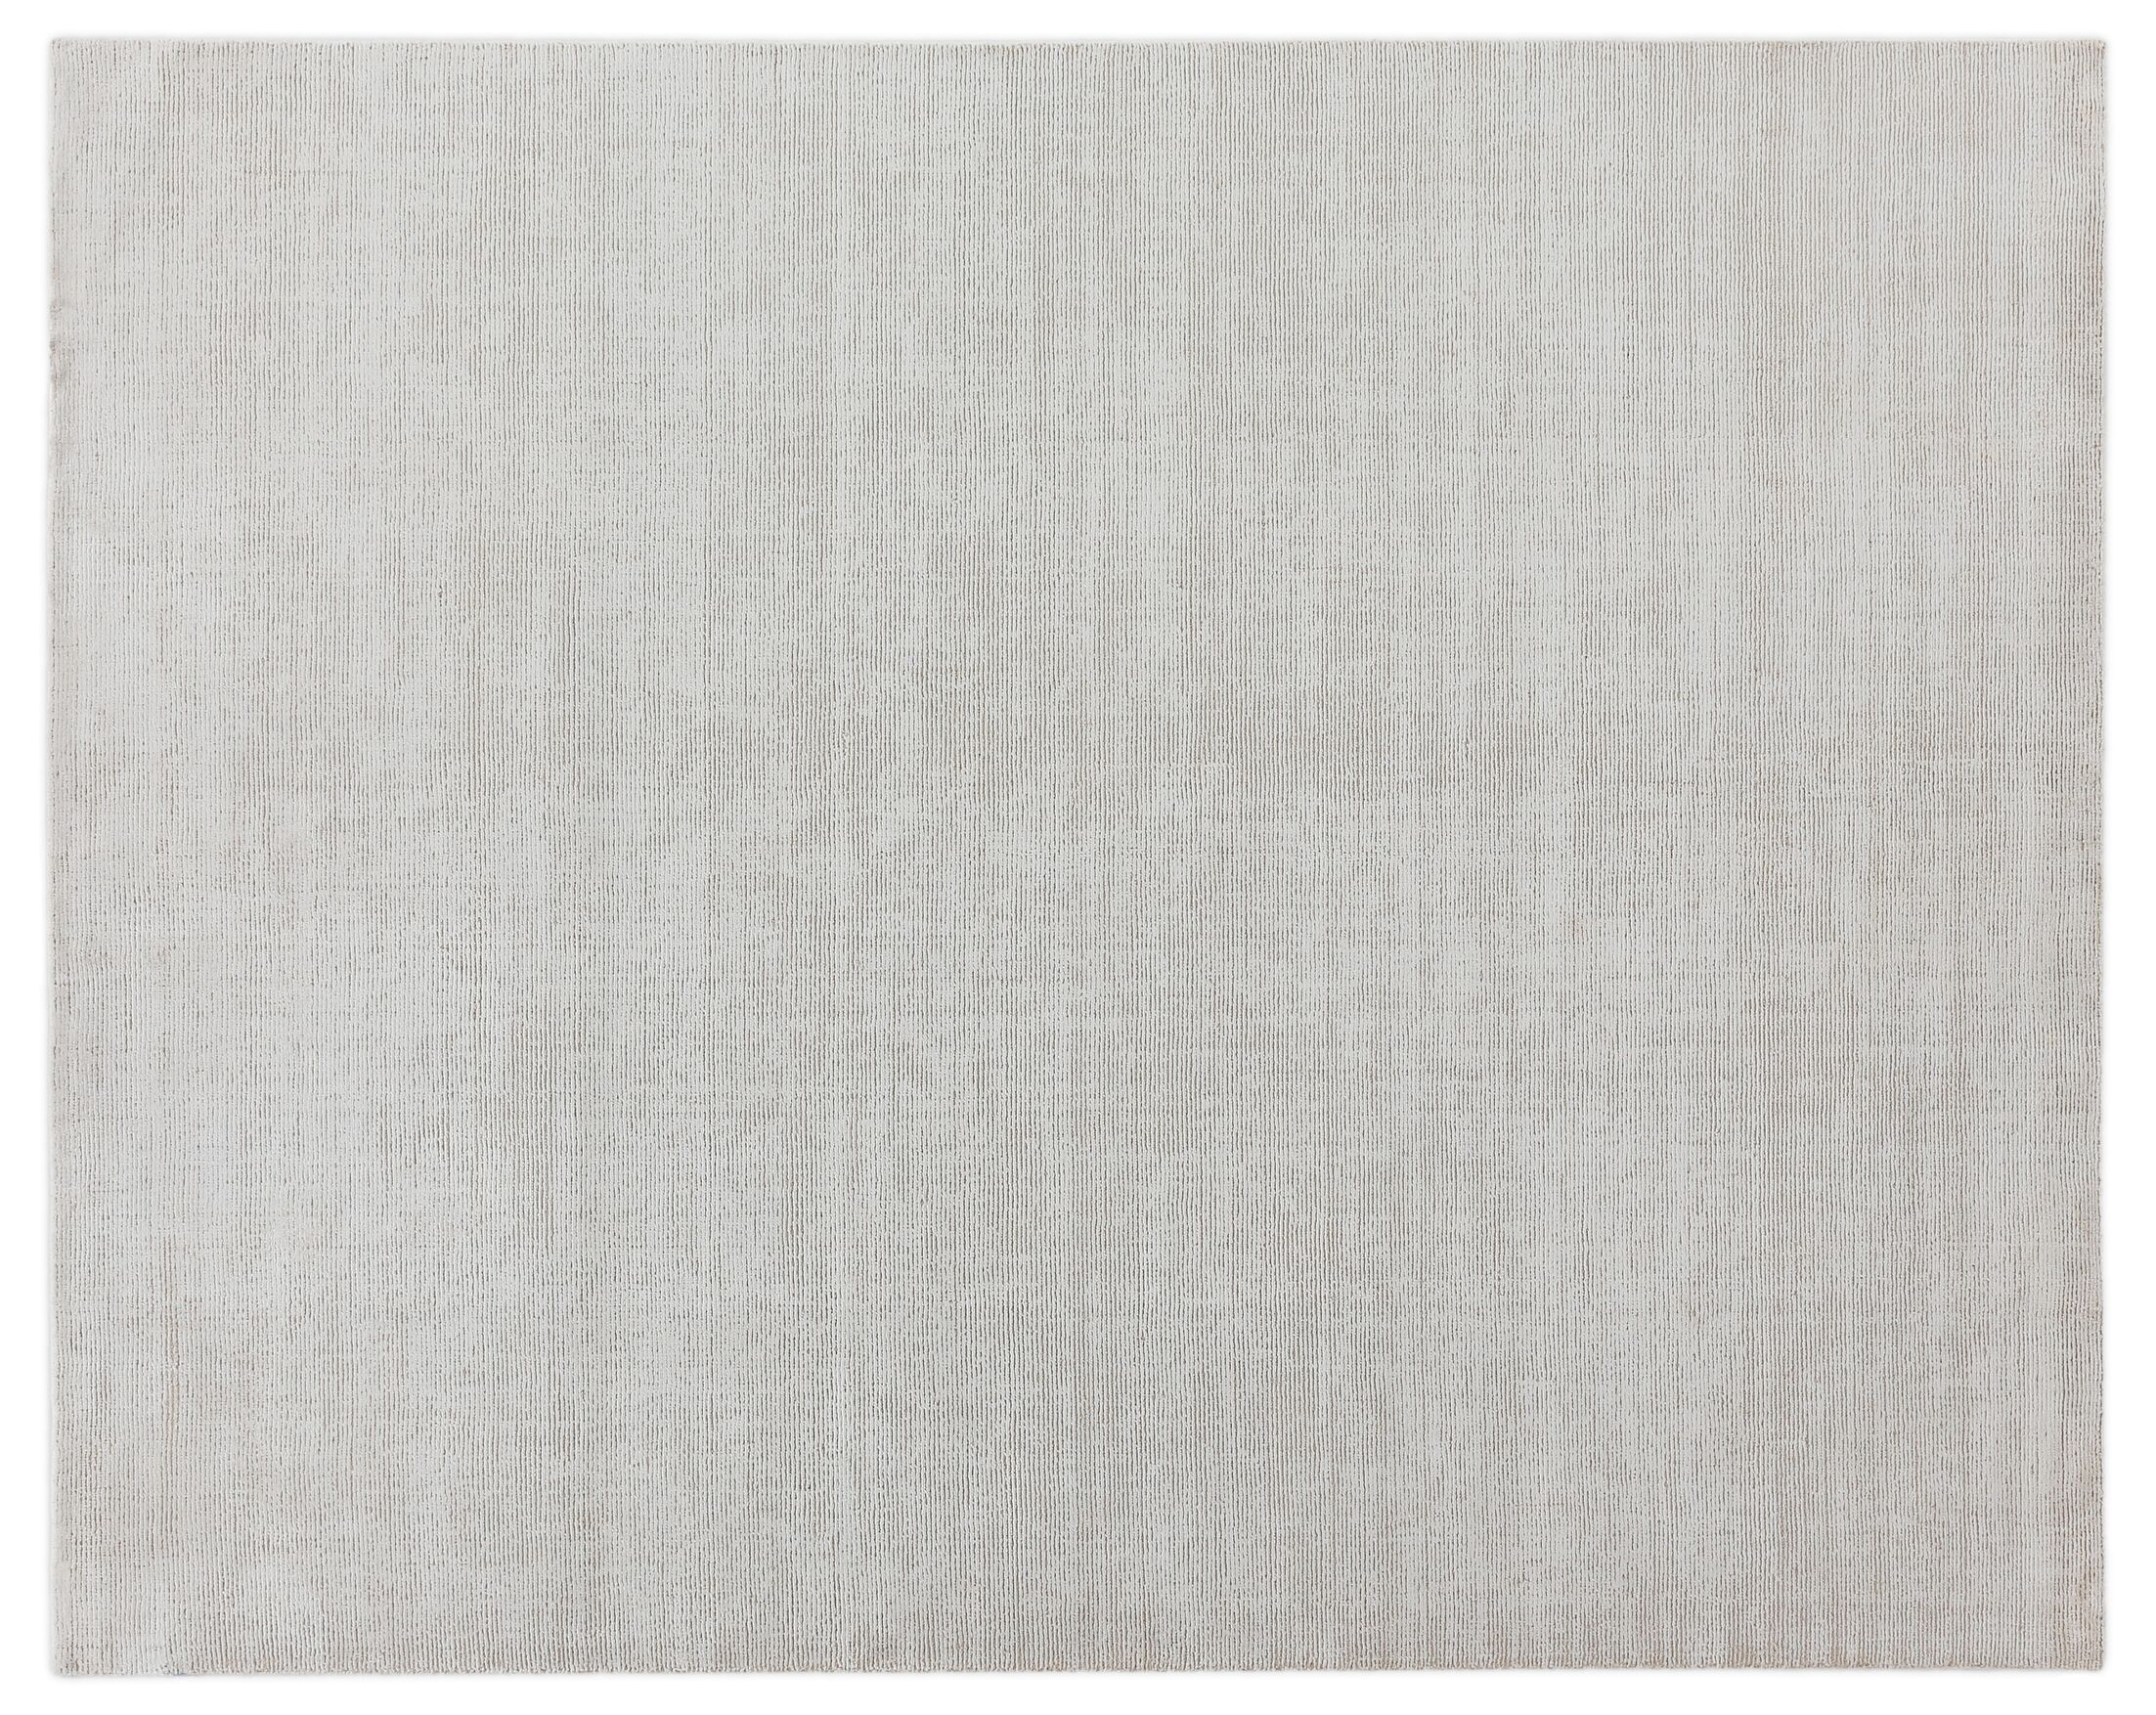 Duo Hand-Loomed Wool/Silk White/Beige Area Rug Rug Size: Rectangle 14' x 18'